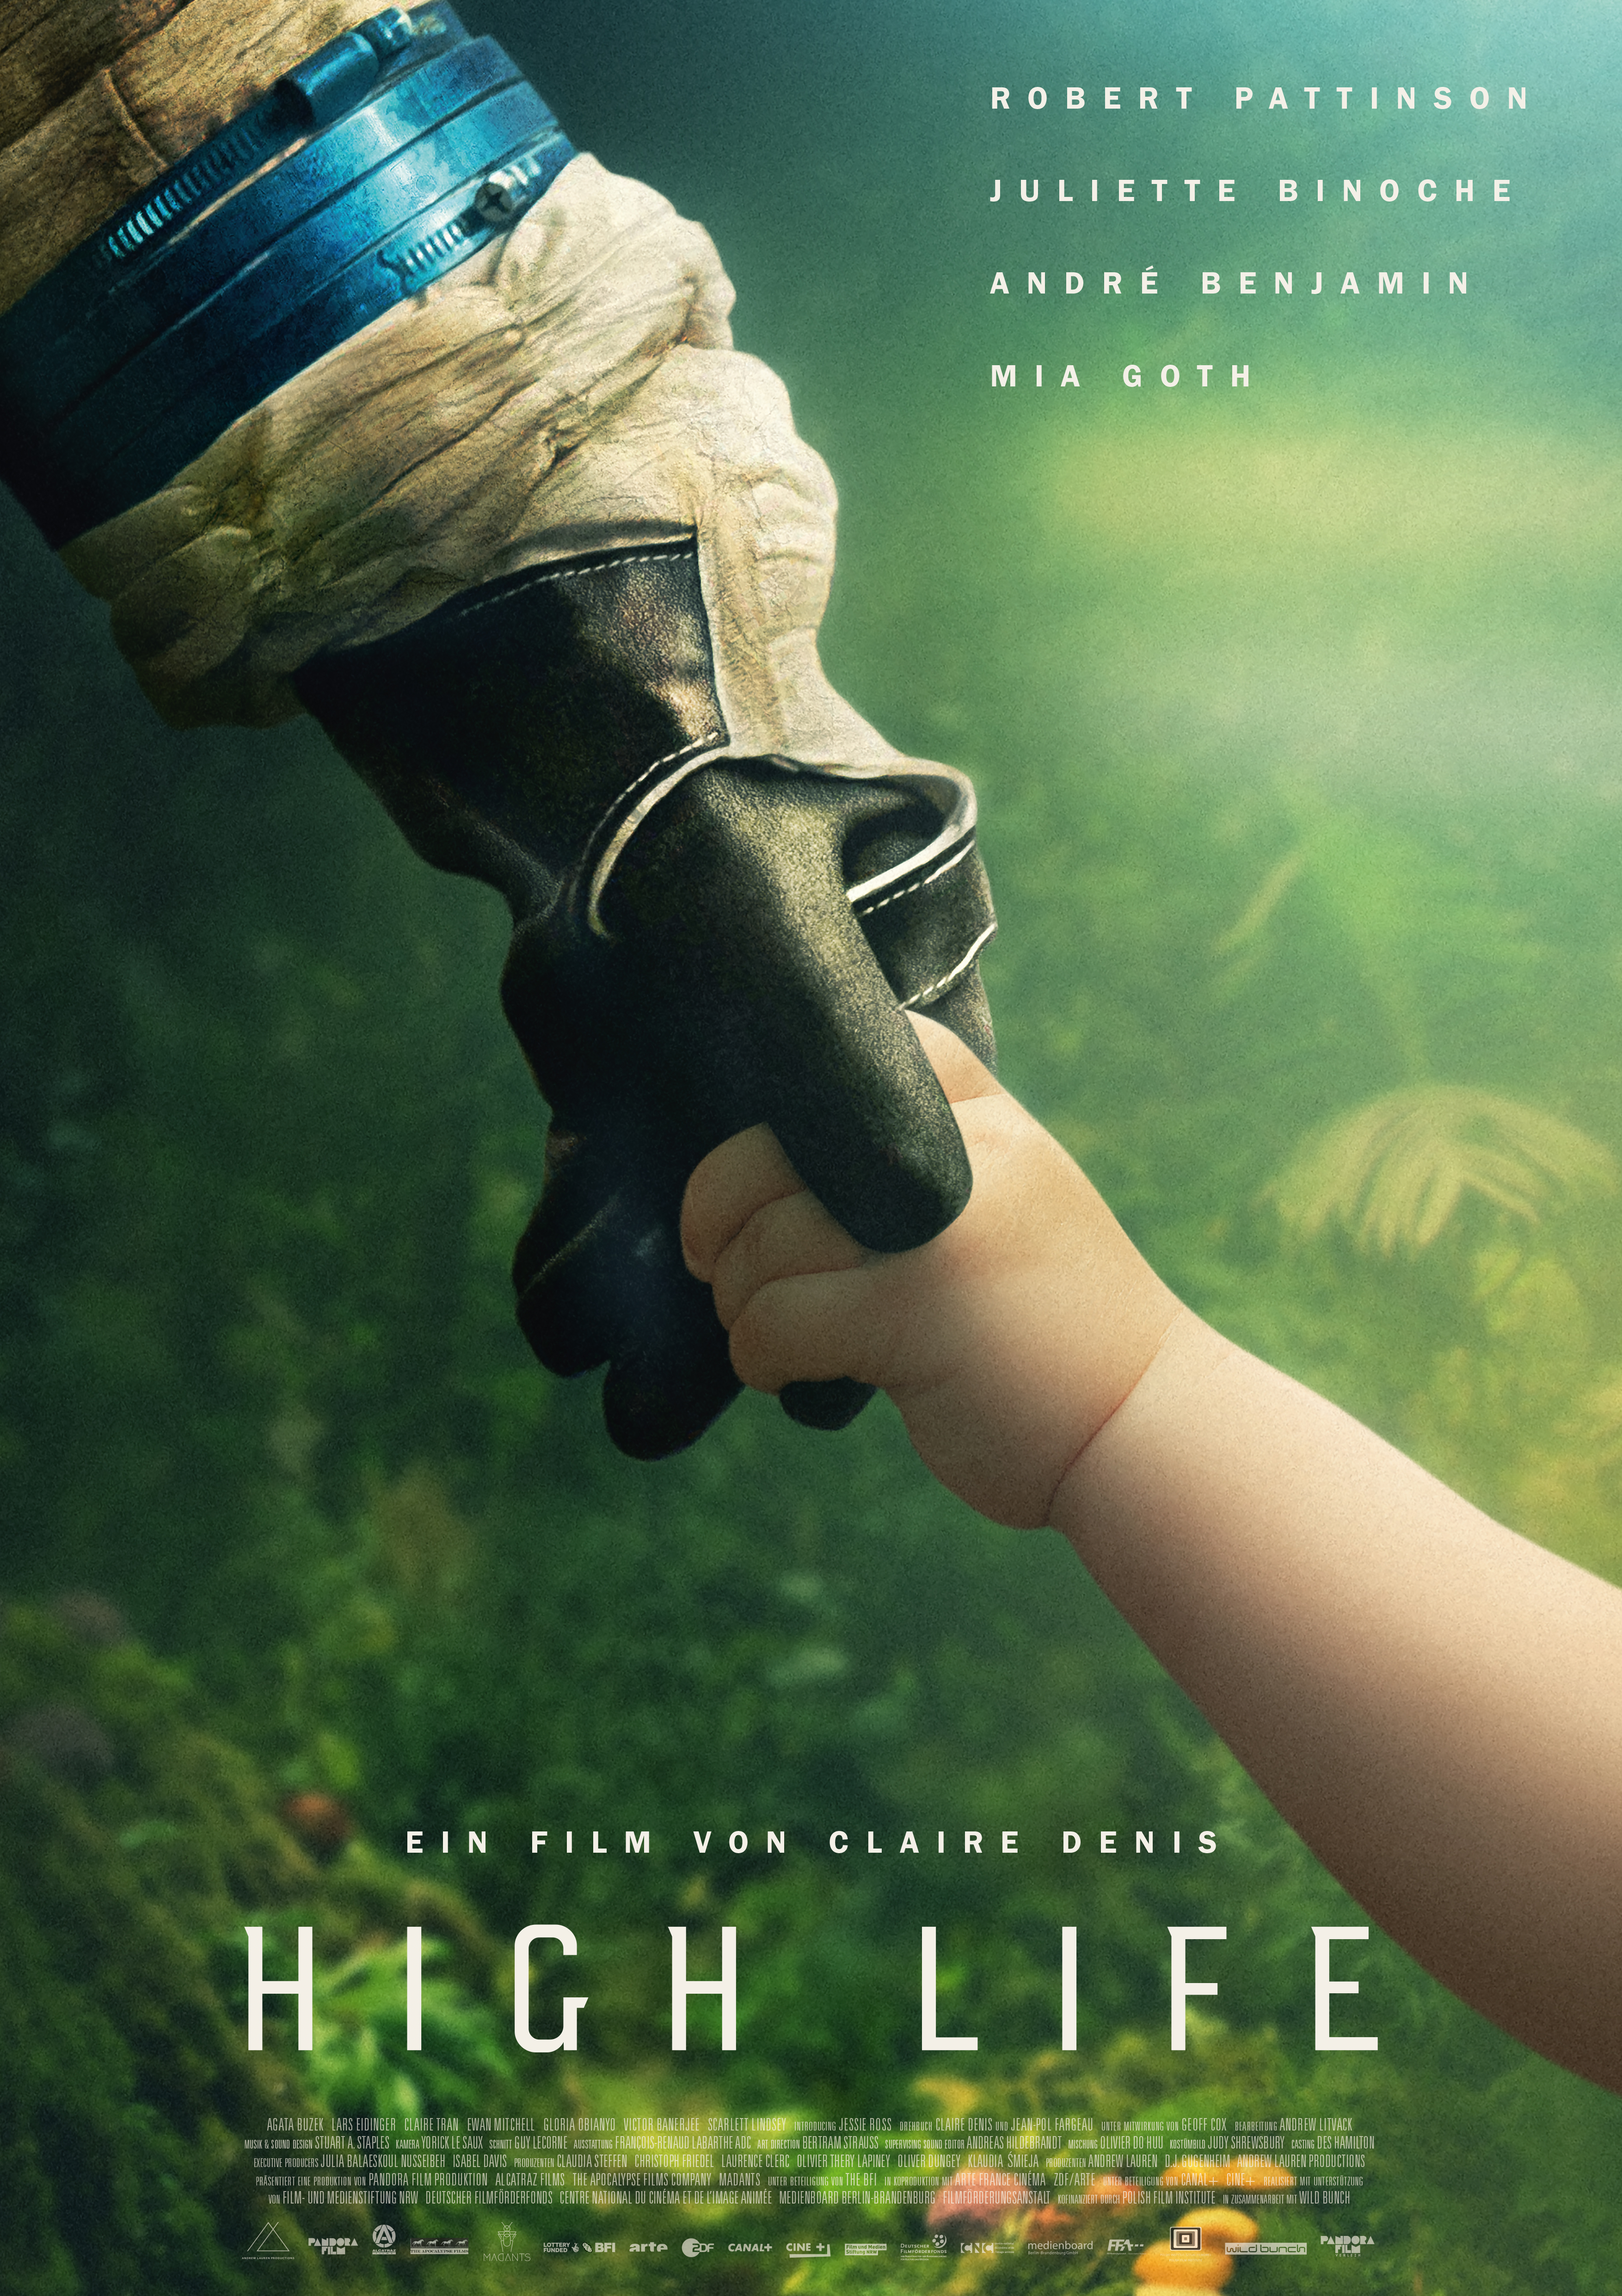 High Life Film 2018 Trailer Kritik Kinode